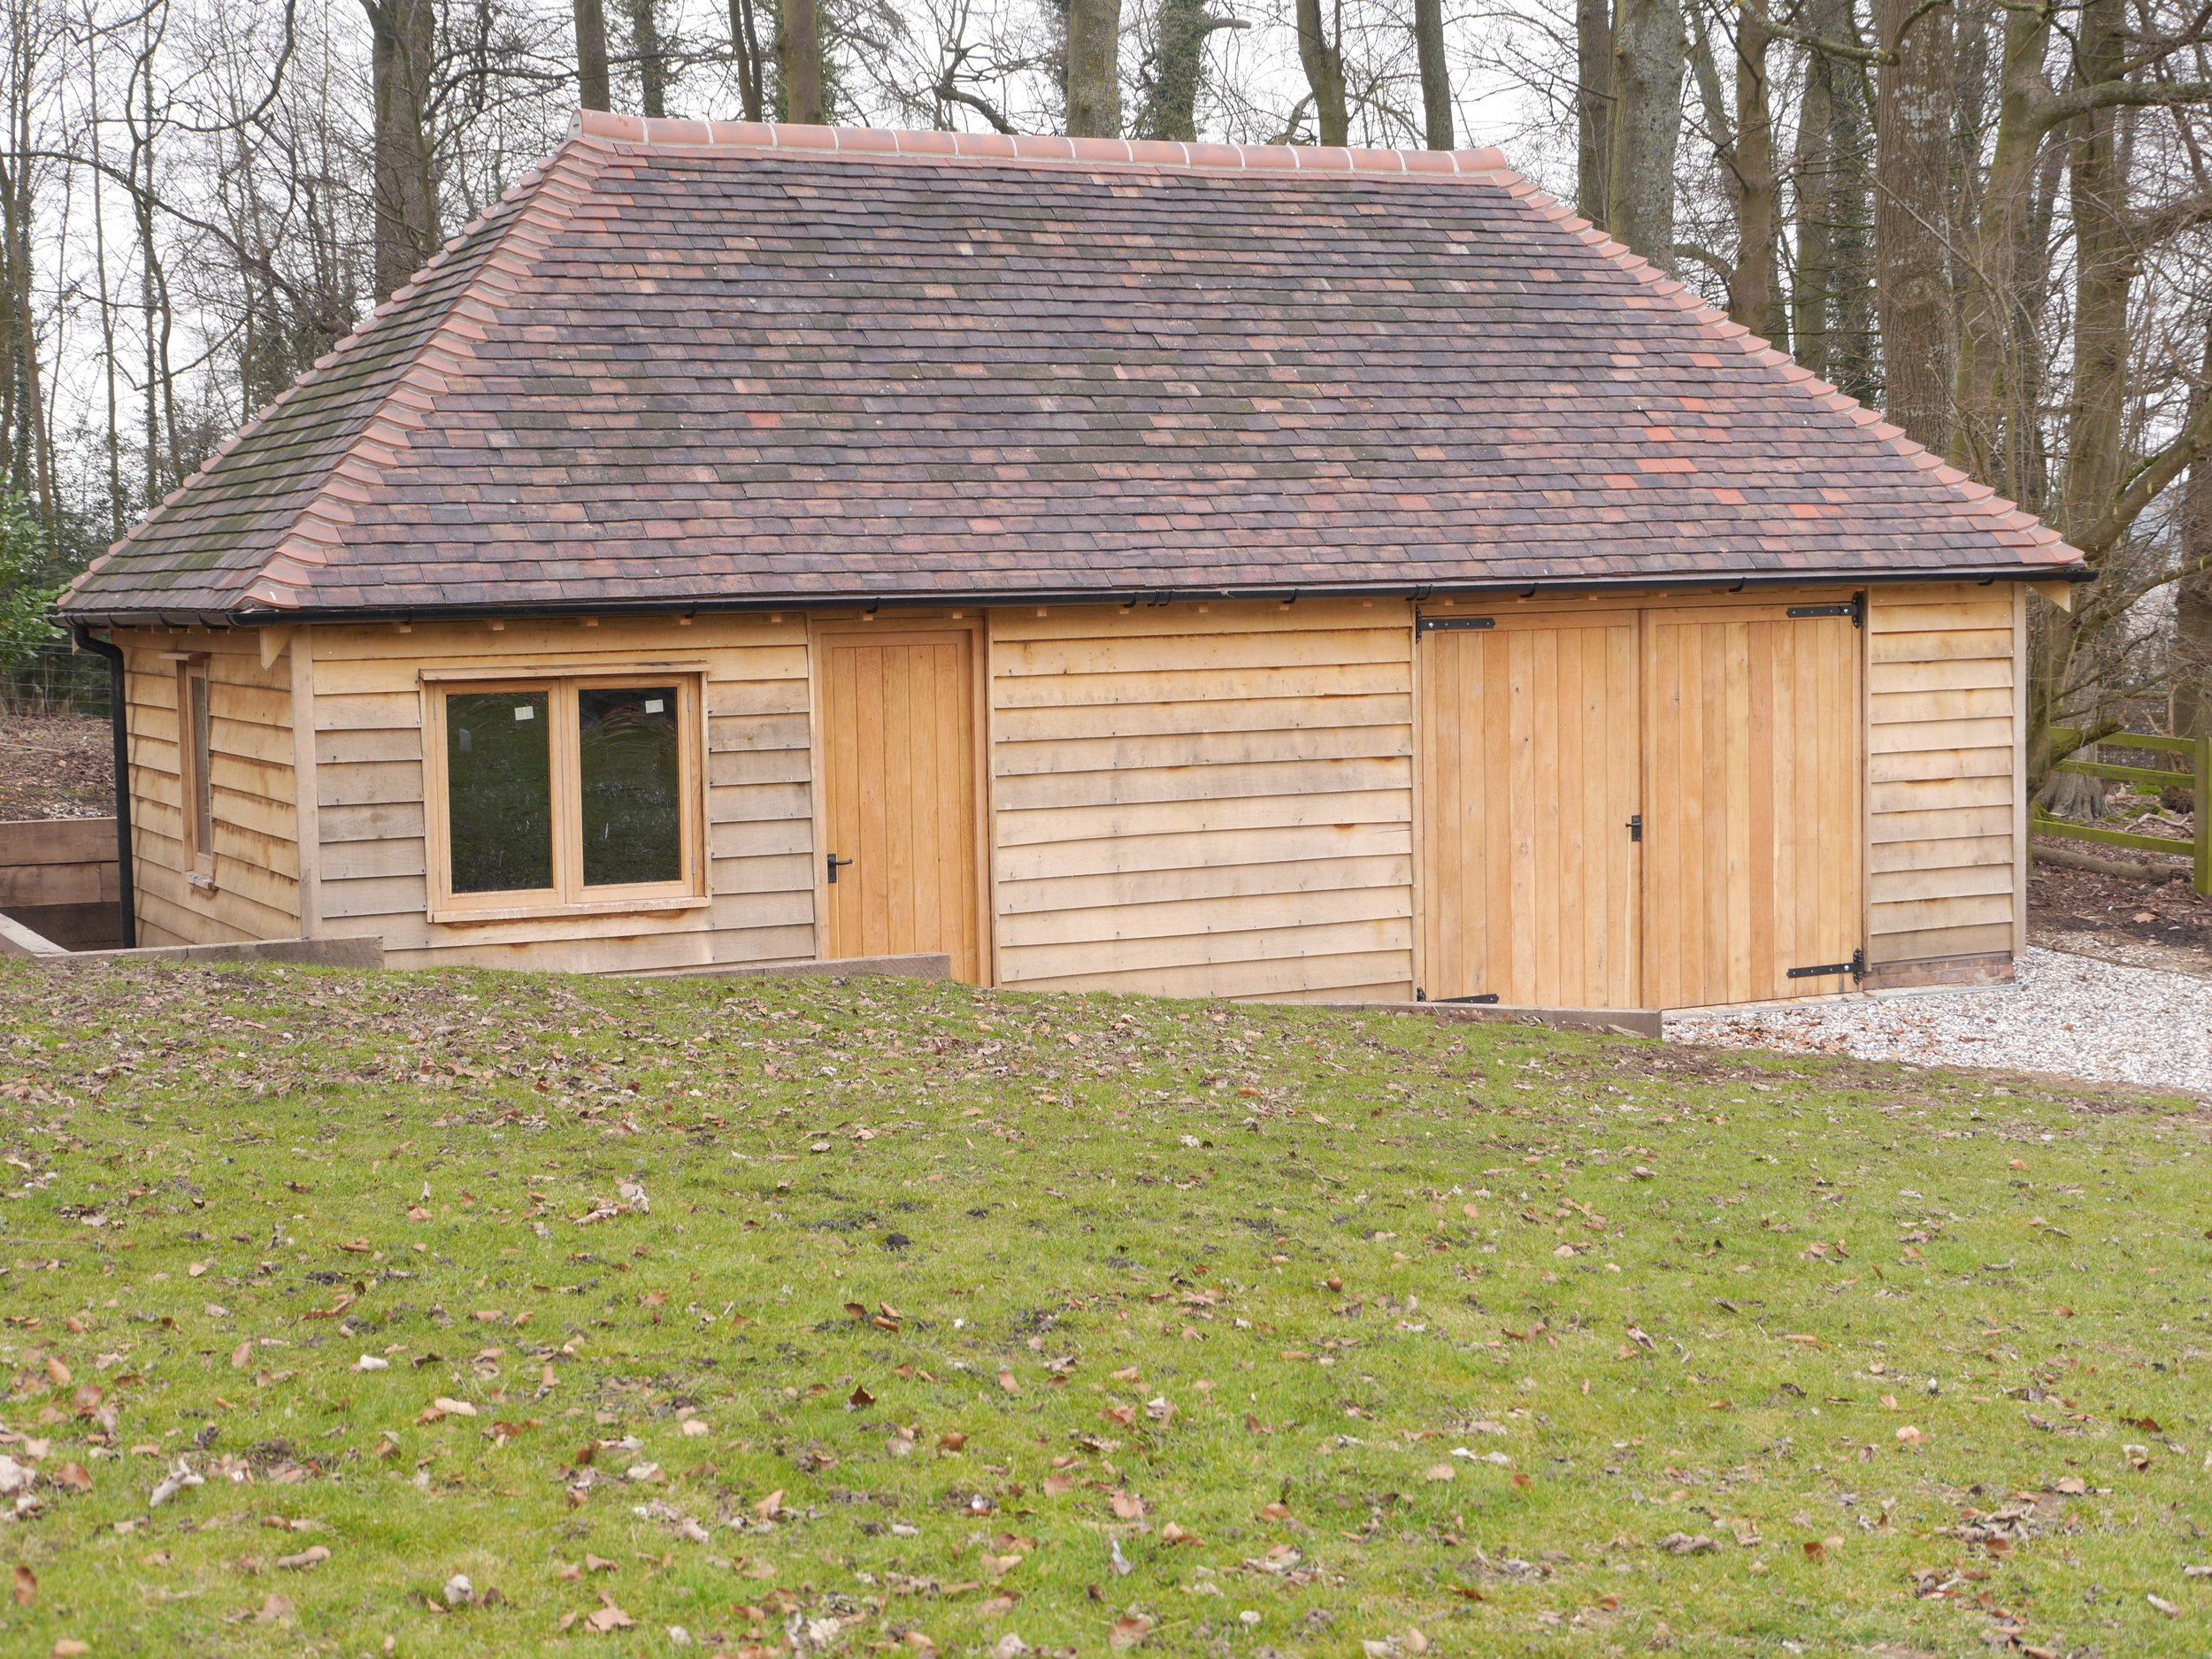 timber framed garage, oak framed garage